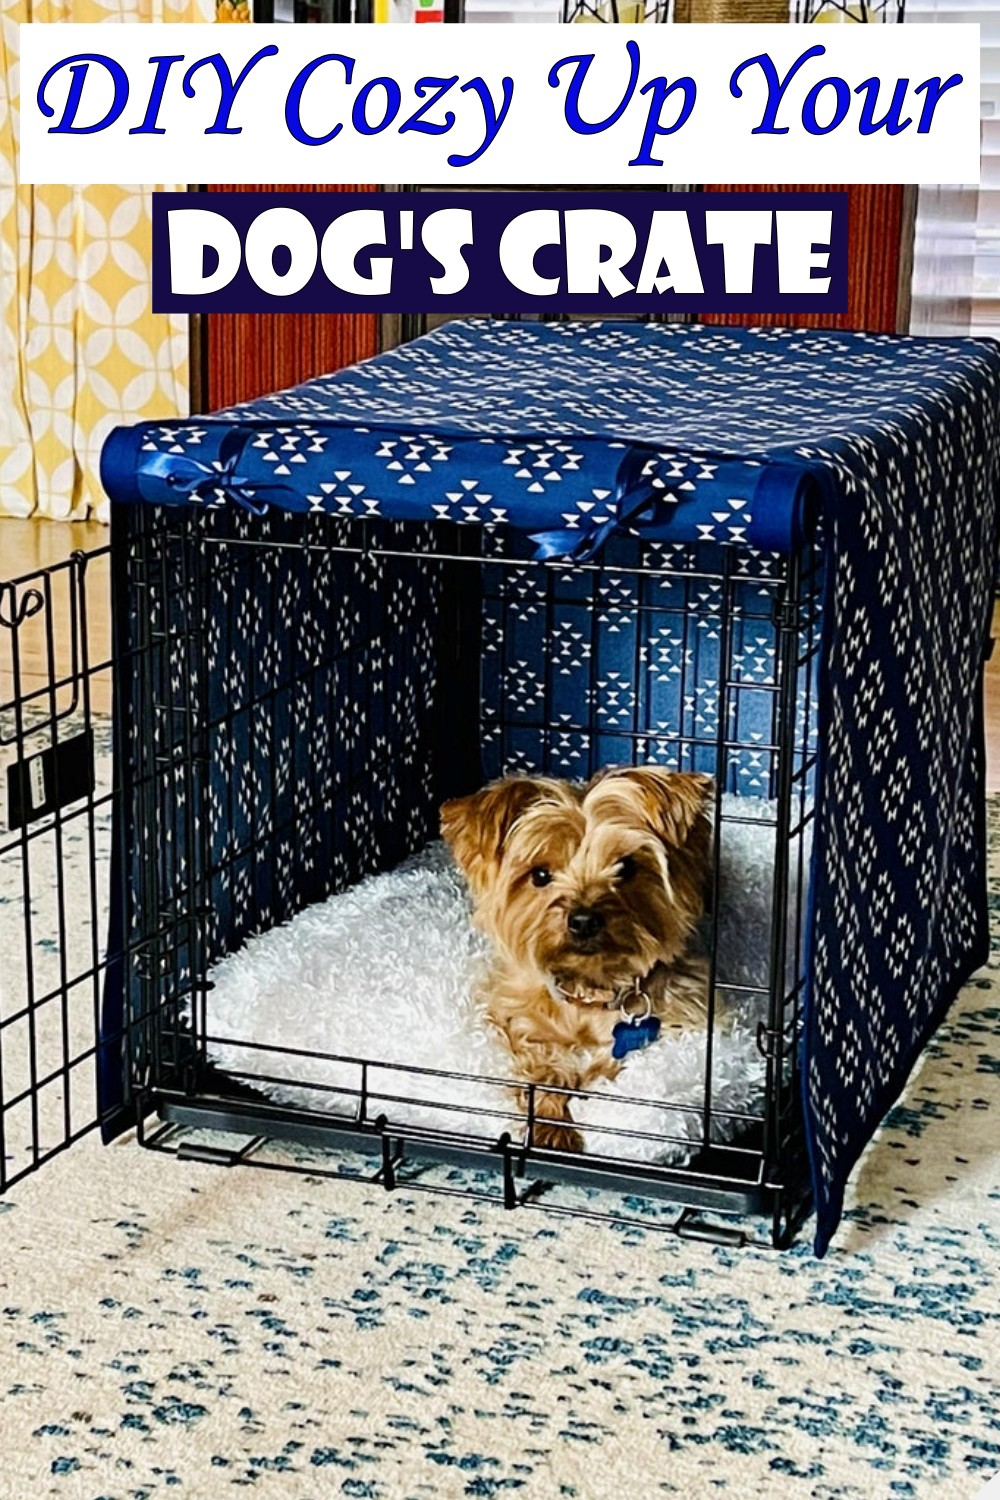 DIY Cozy Up Your Dog's Crate